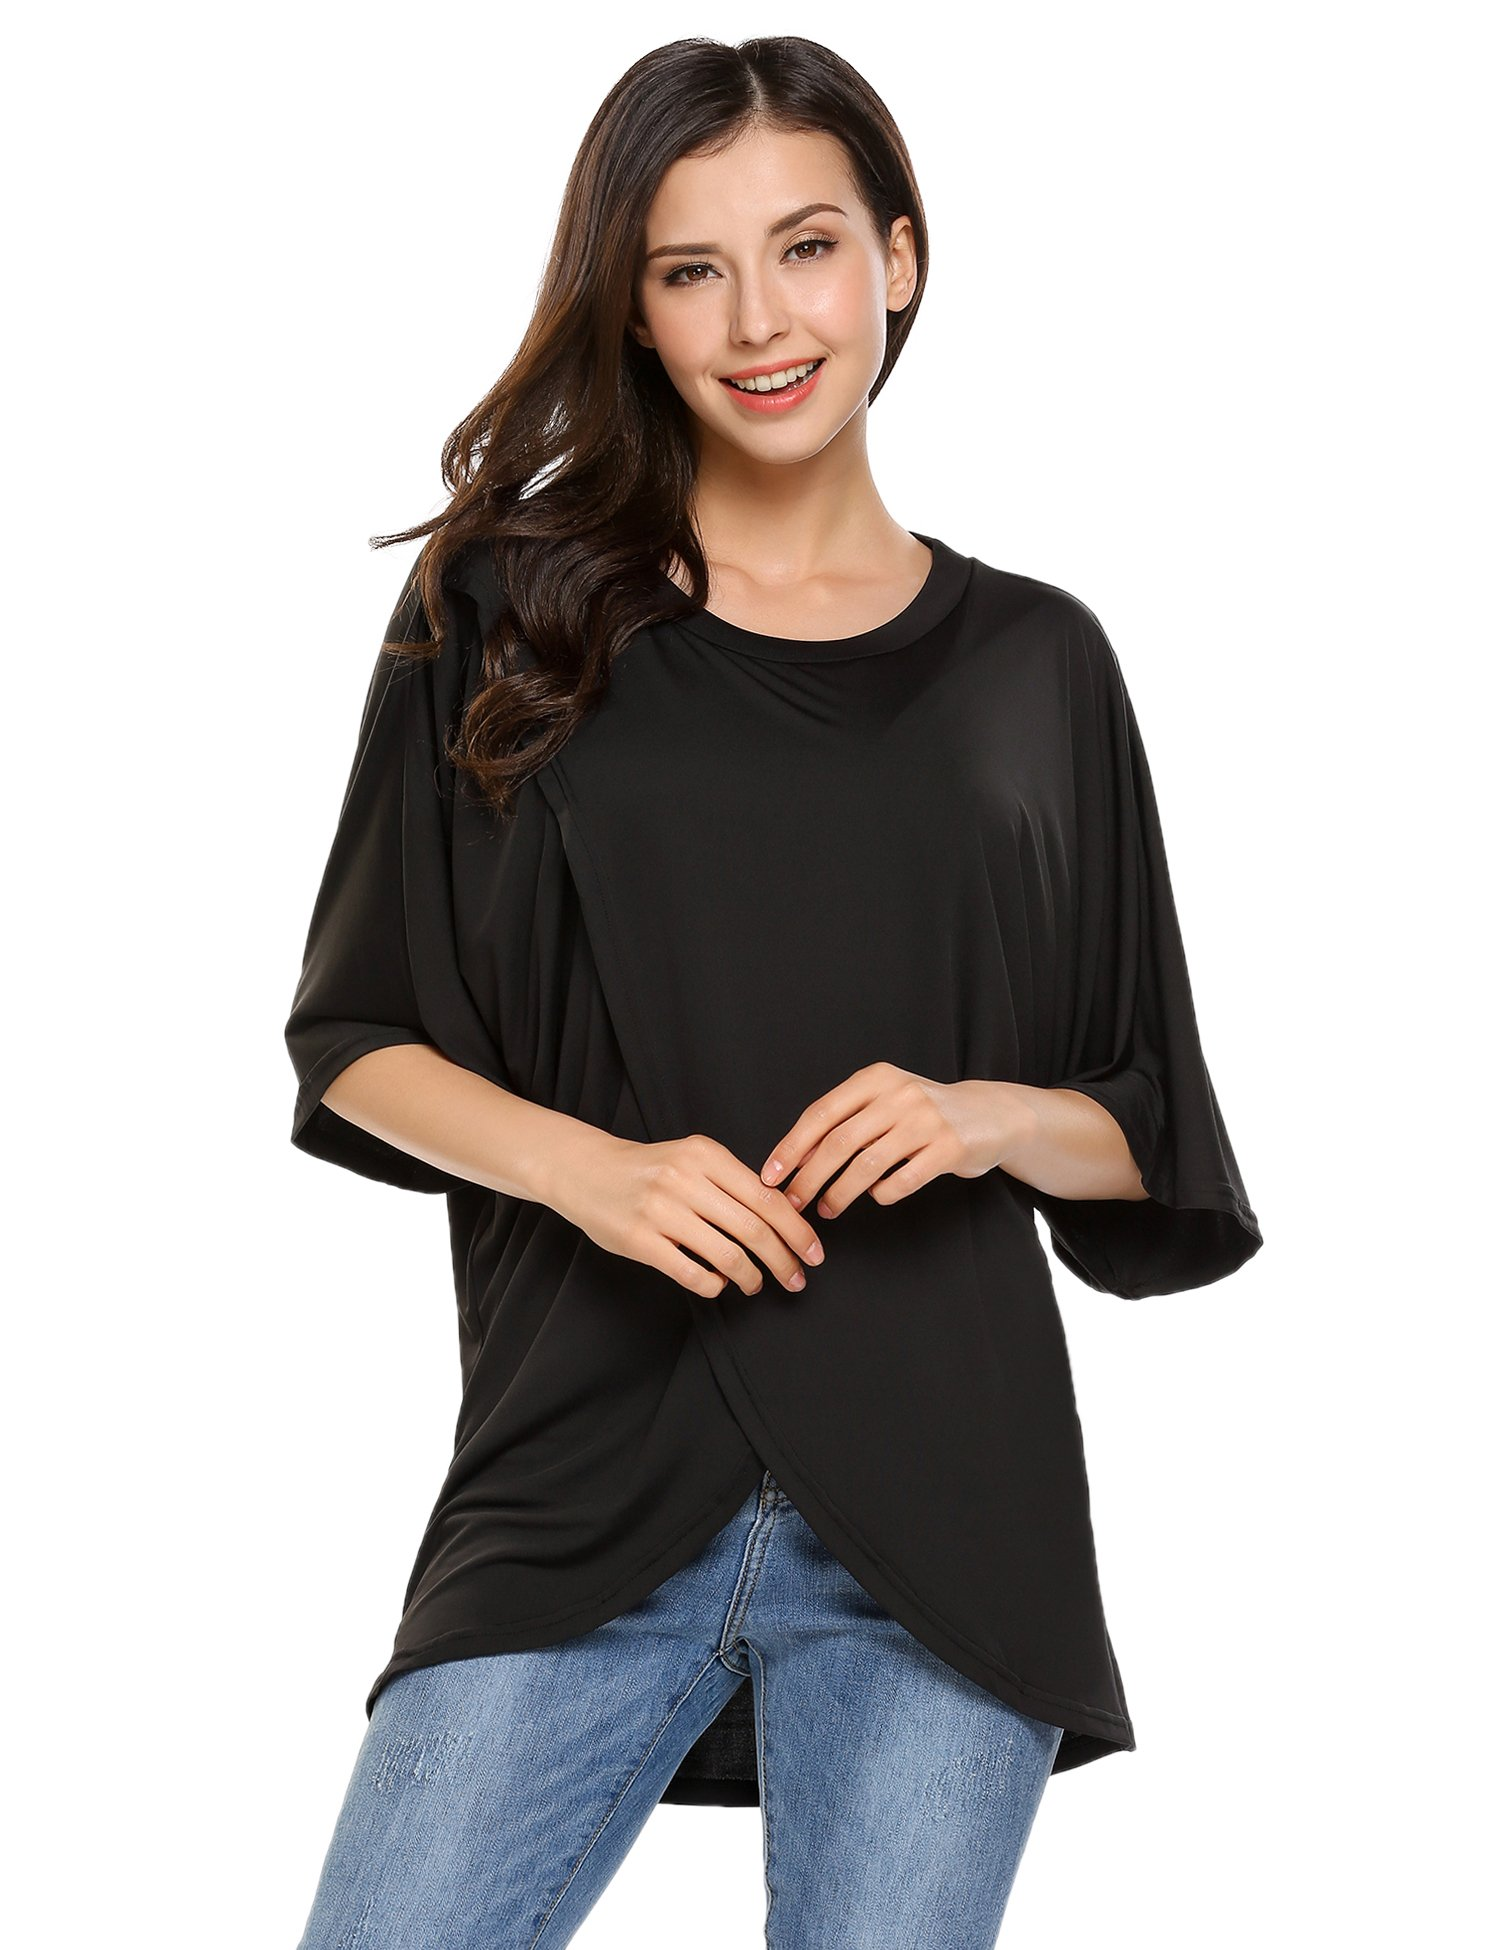 Beyove Women 1/2 Sleeve Round Neck Comfy Loose Fit T-Shirt Blouse Crossover Tops(Black,S)